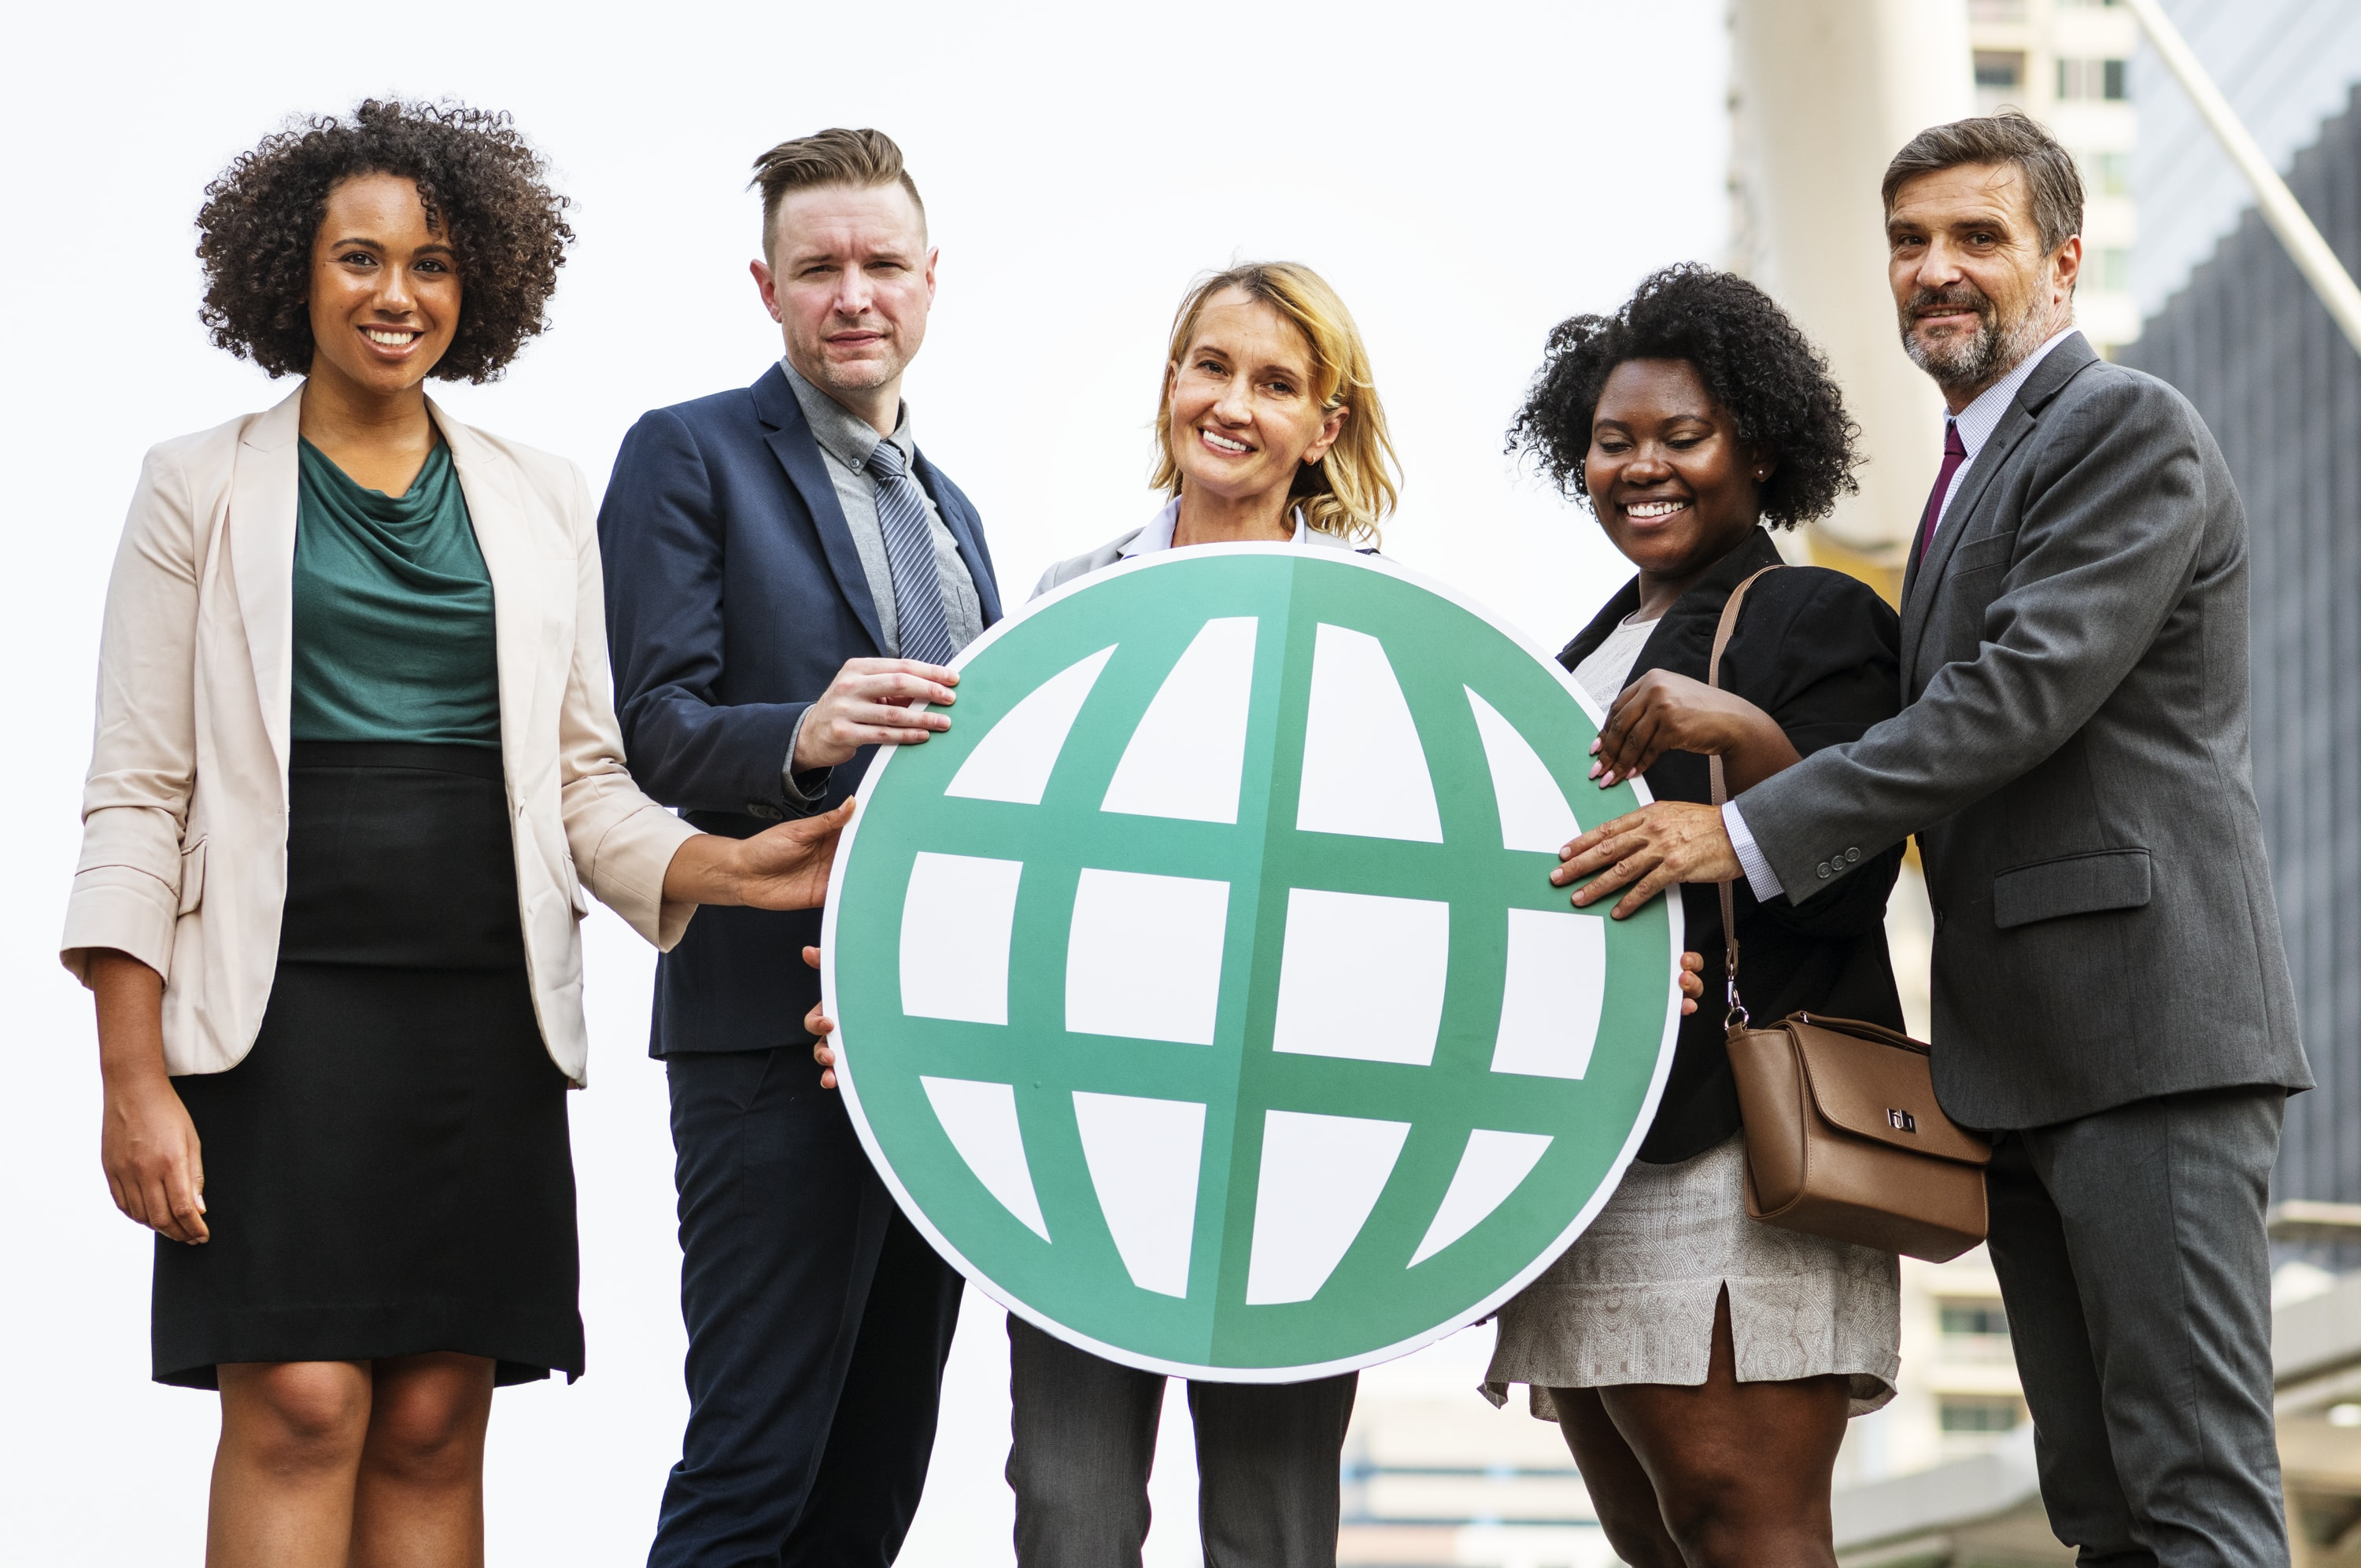 five person holding round white and green globe cutout board